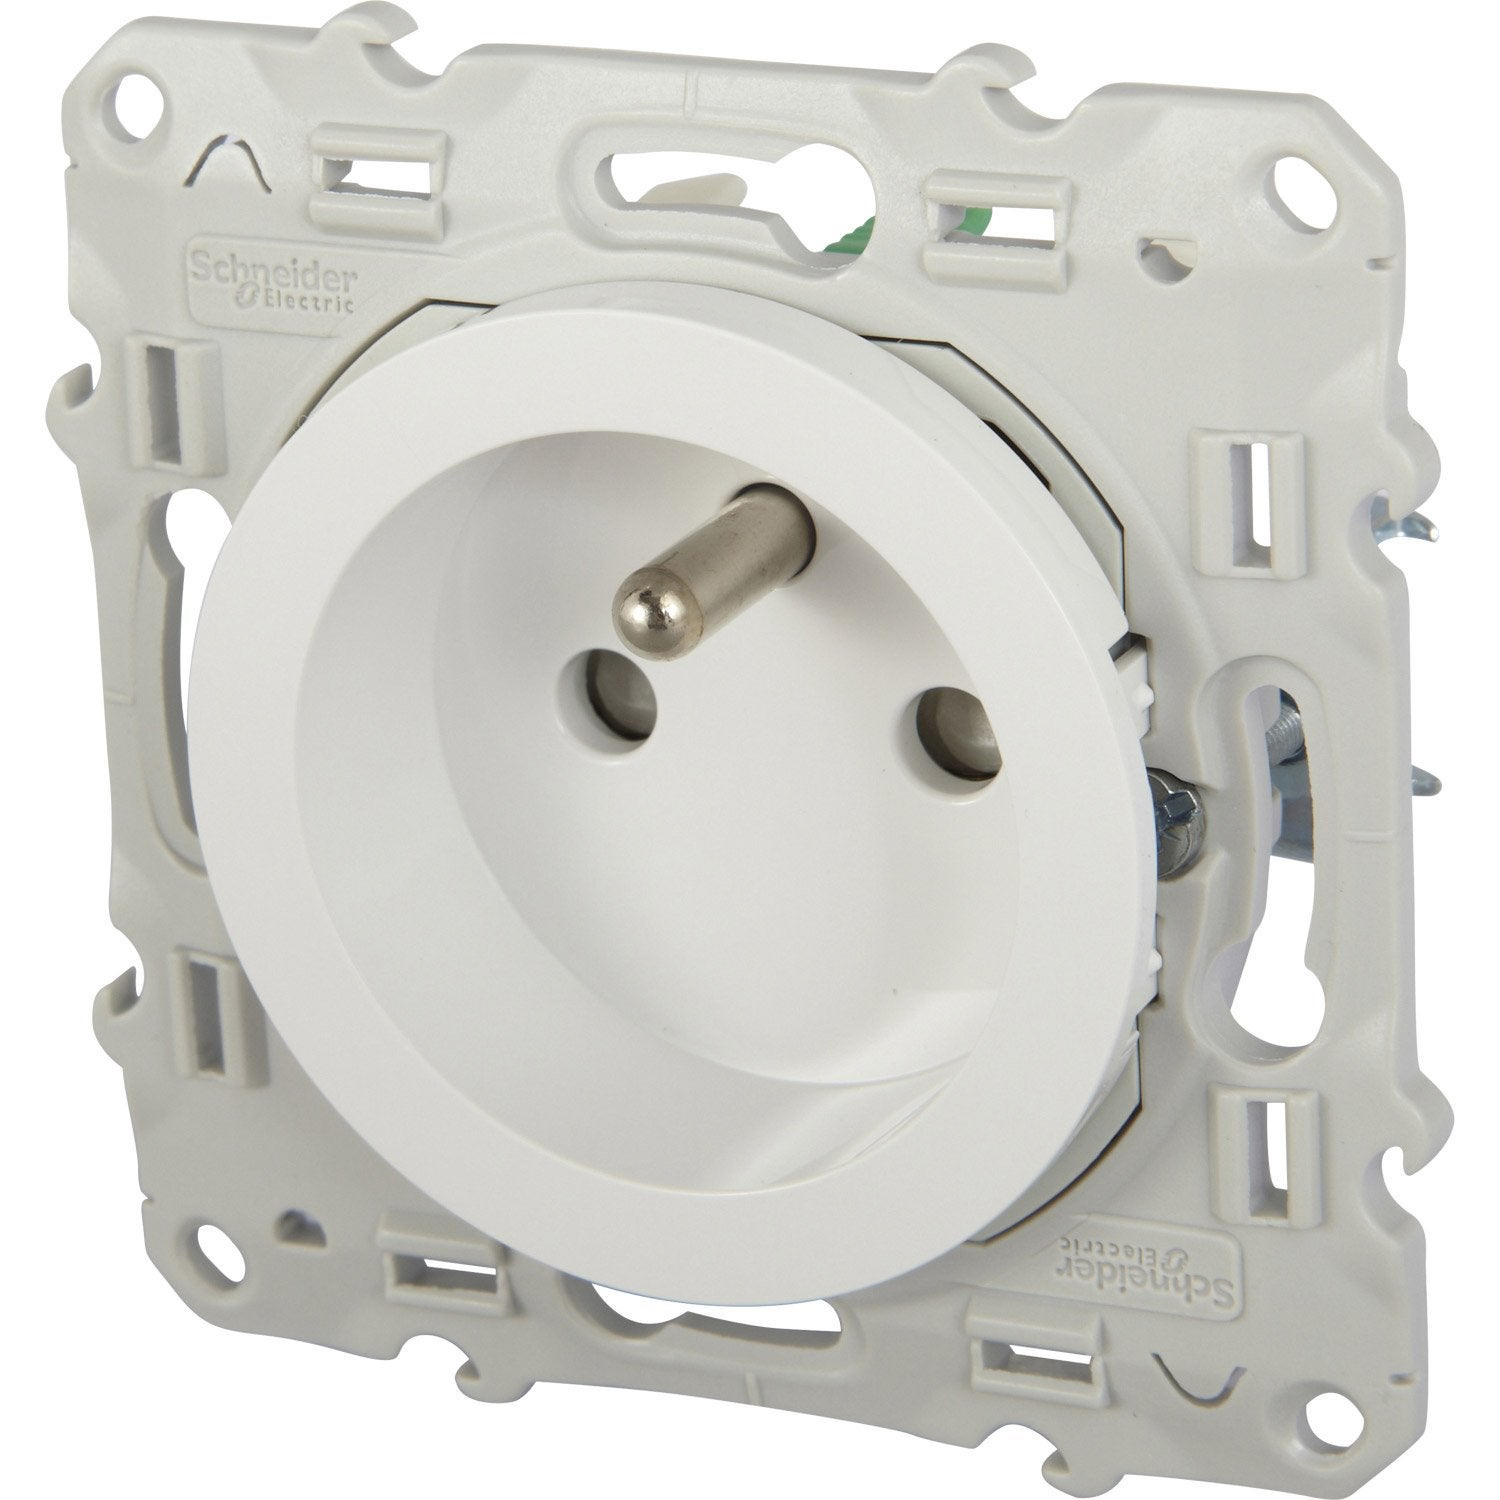 Prise avec terre odace schneider electric blanc leroy merlin - Cache prise leroy merlin ...